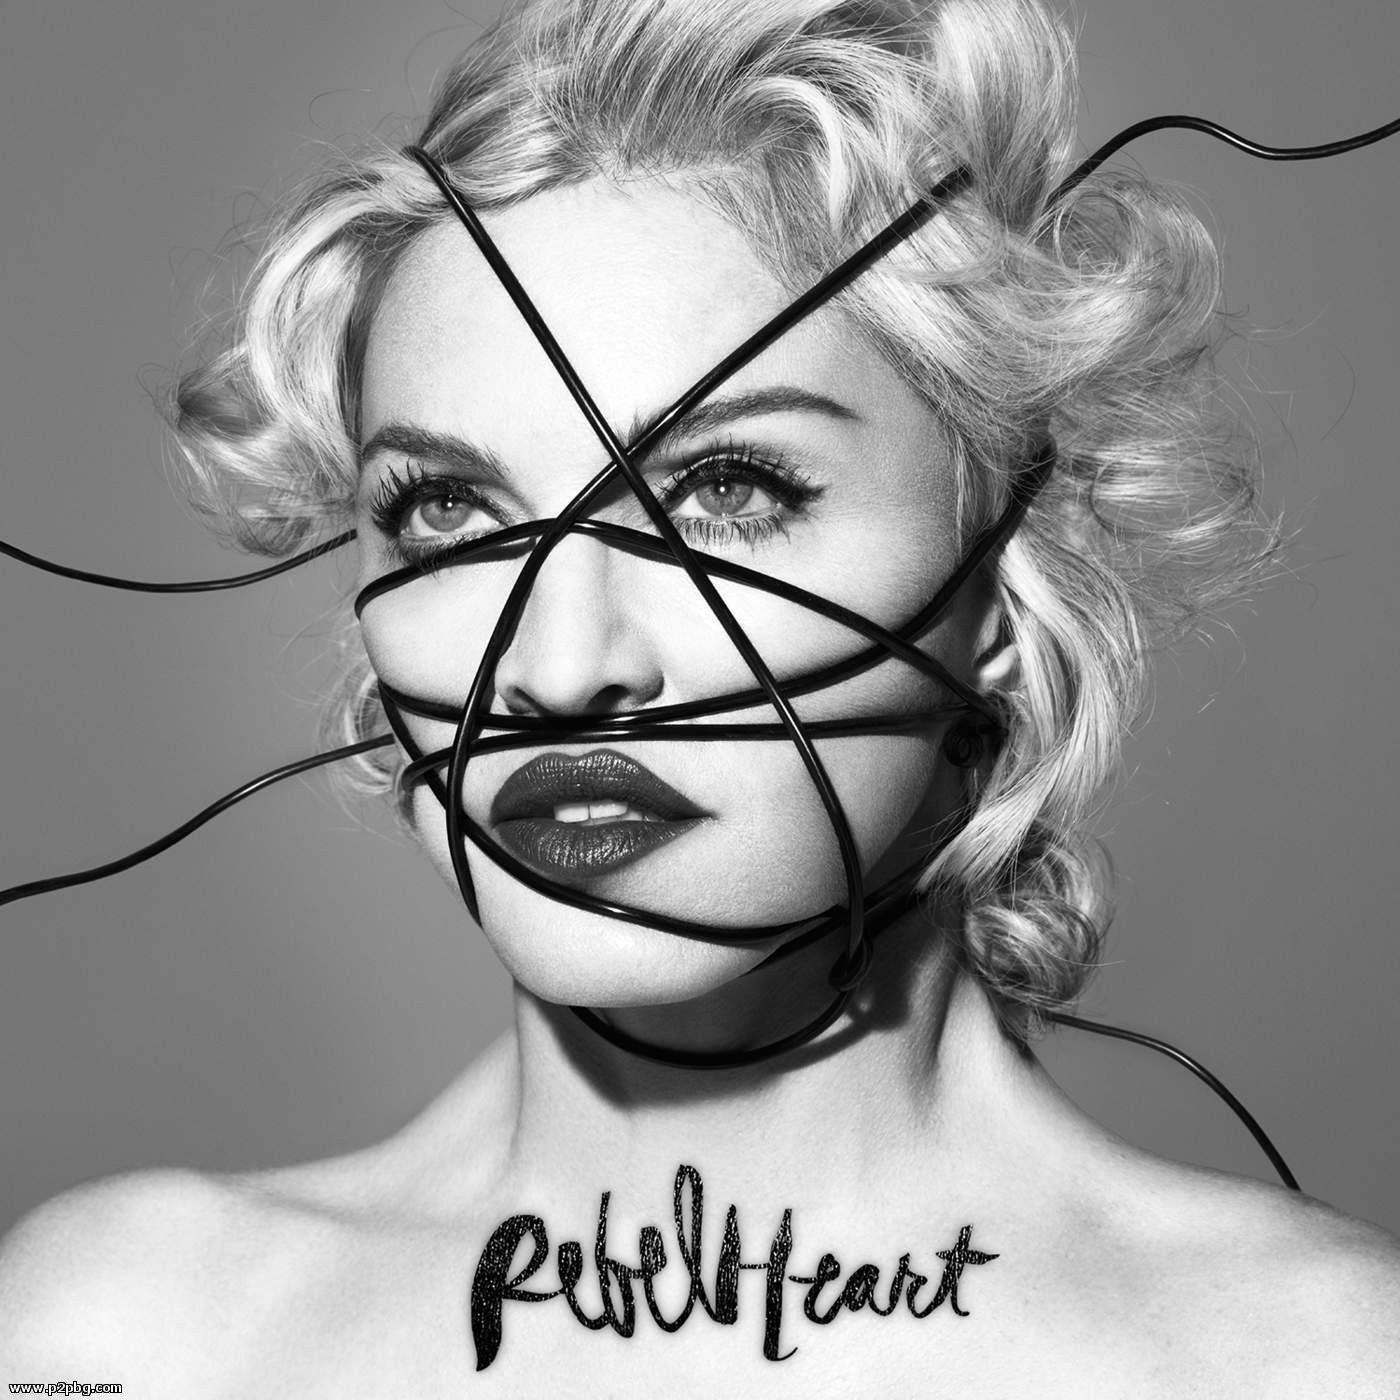 Madonna Takes to Grindr to Promote Album